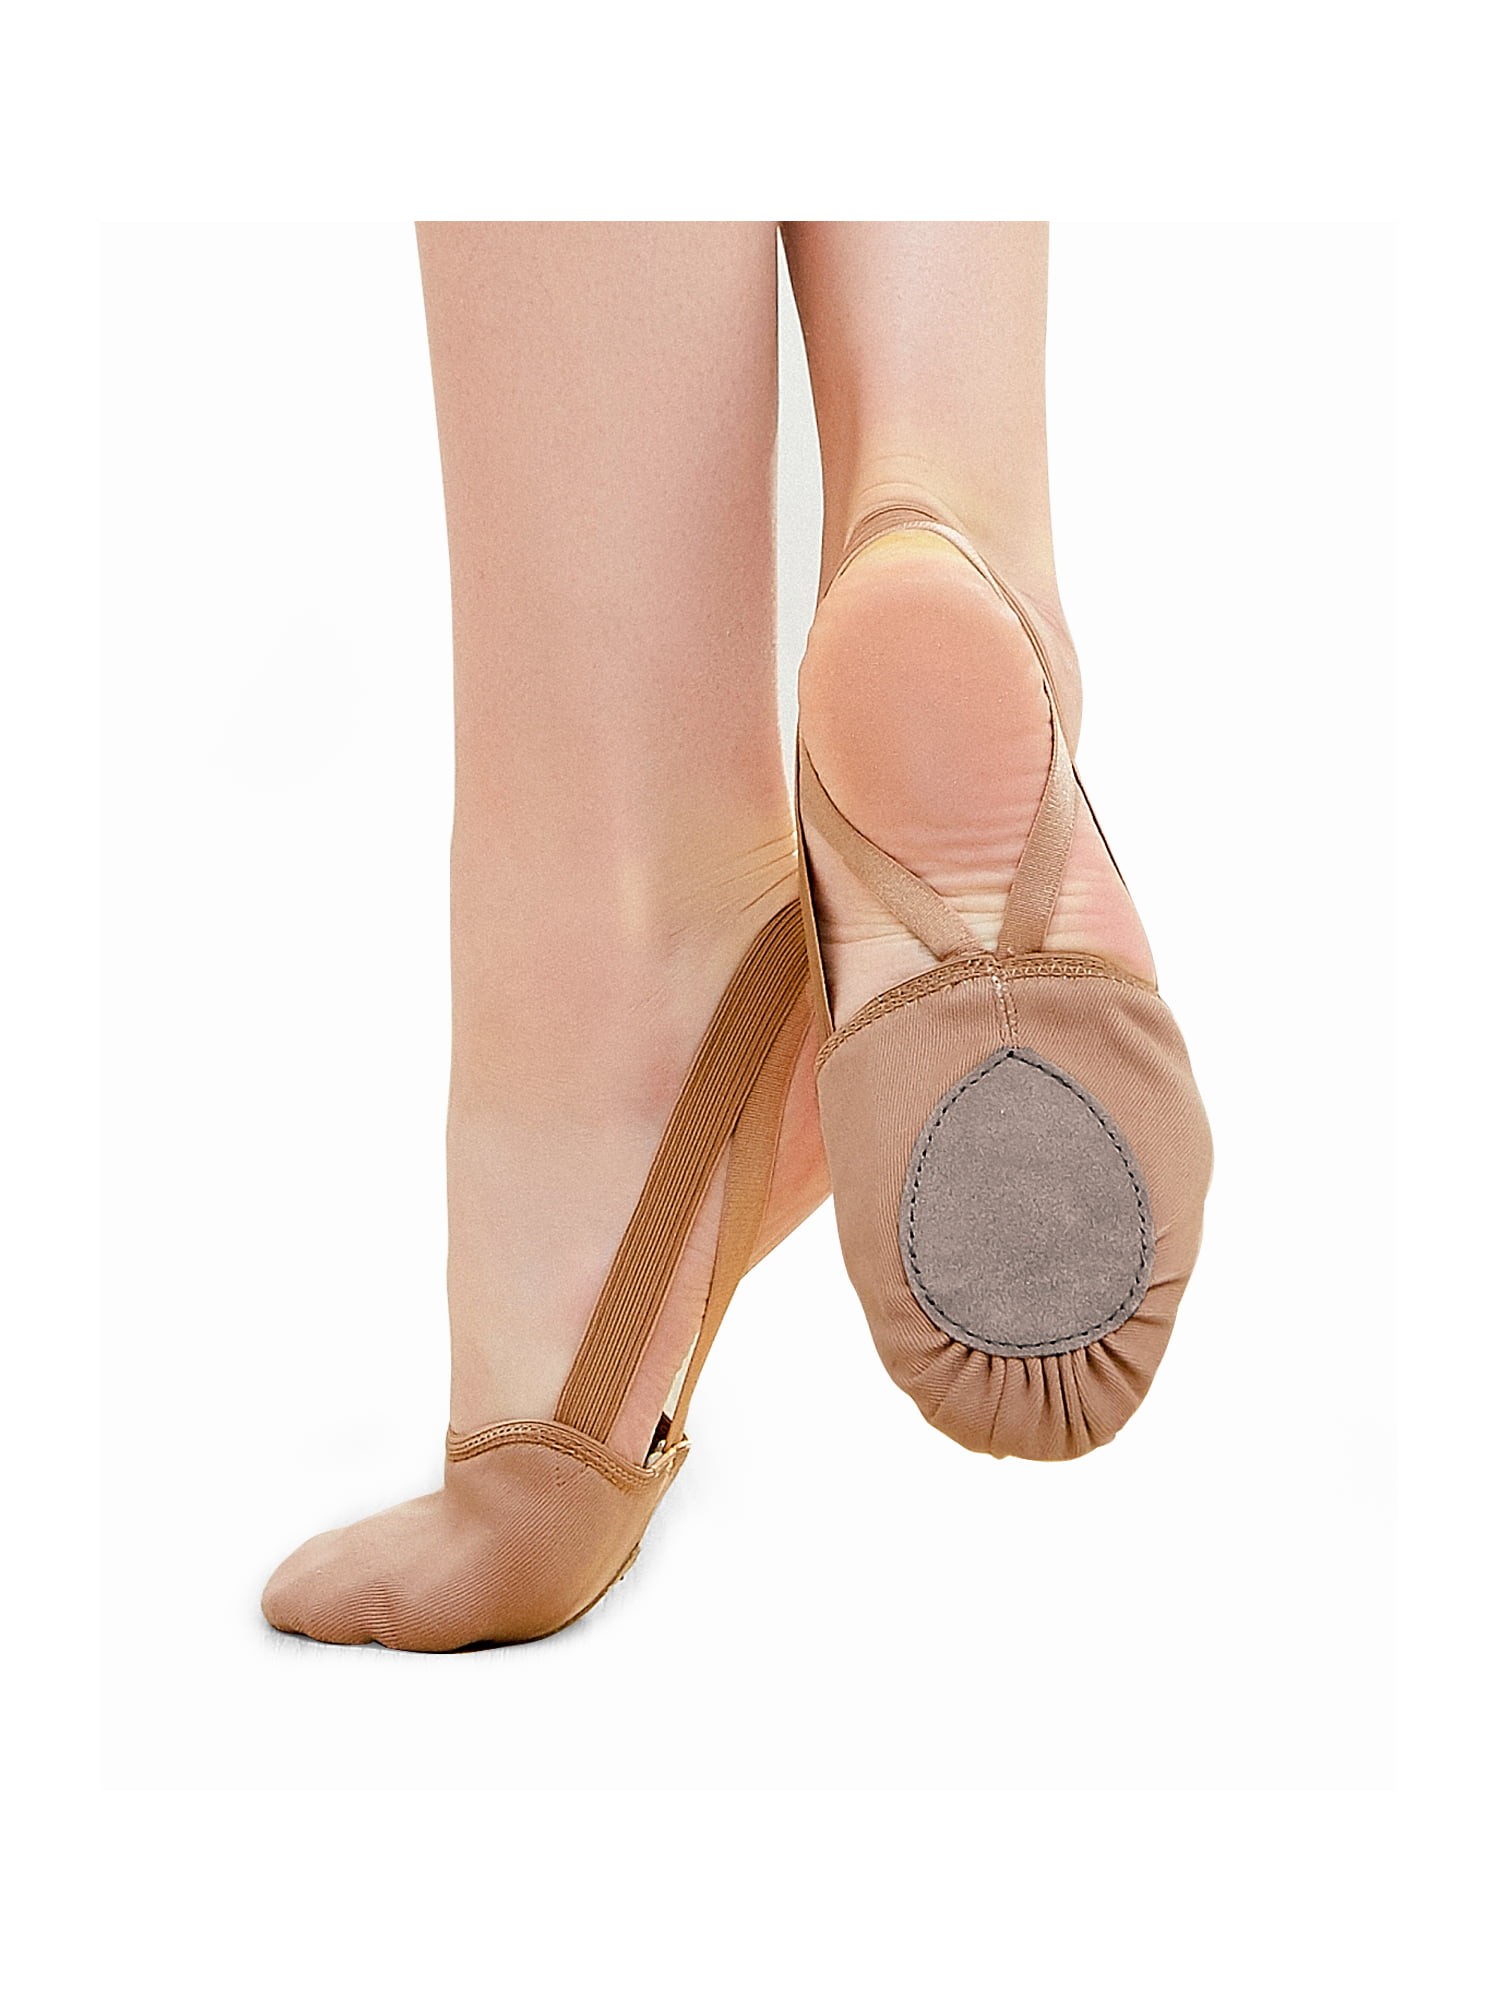 STELLE Canvas Pirouette Half Sole Shoes for Ballet Jazz Dance Girls//Women//Men